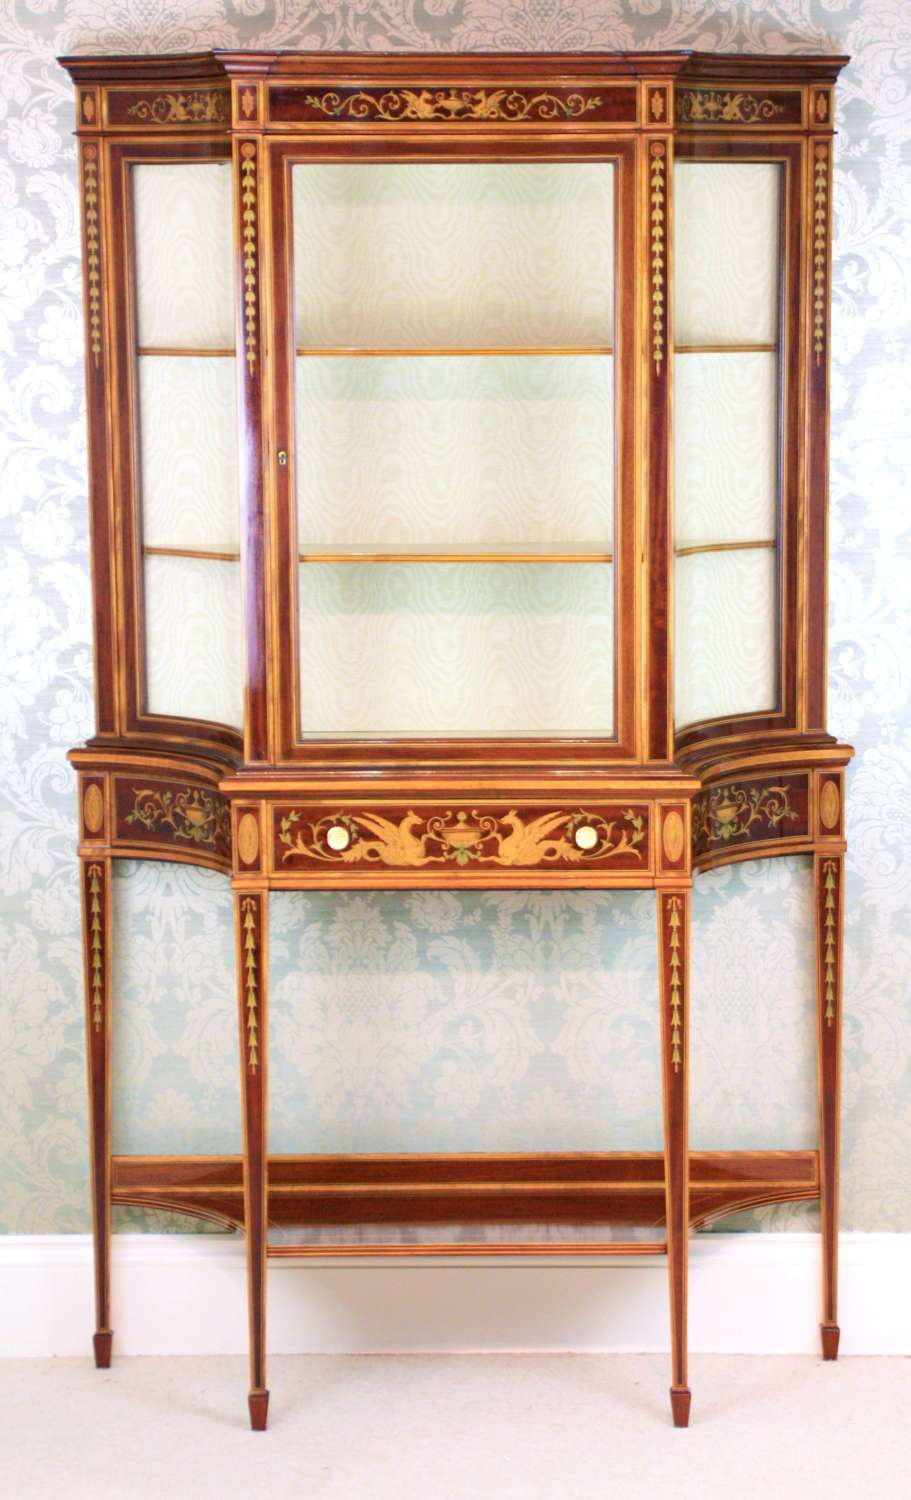 A Fine Late 19th C Edwards & Roberts Mahogany Display Cabinet